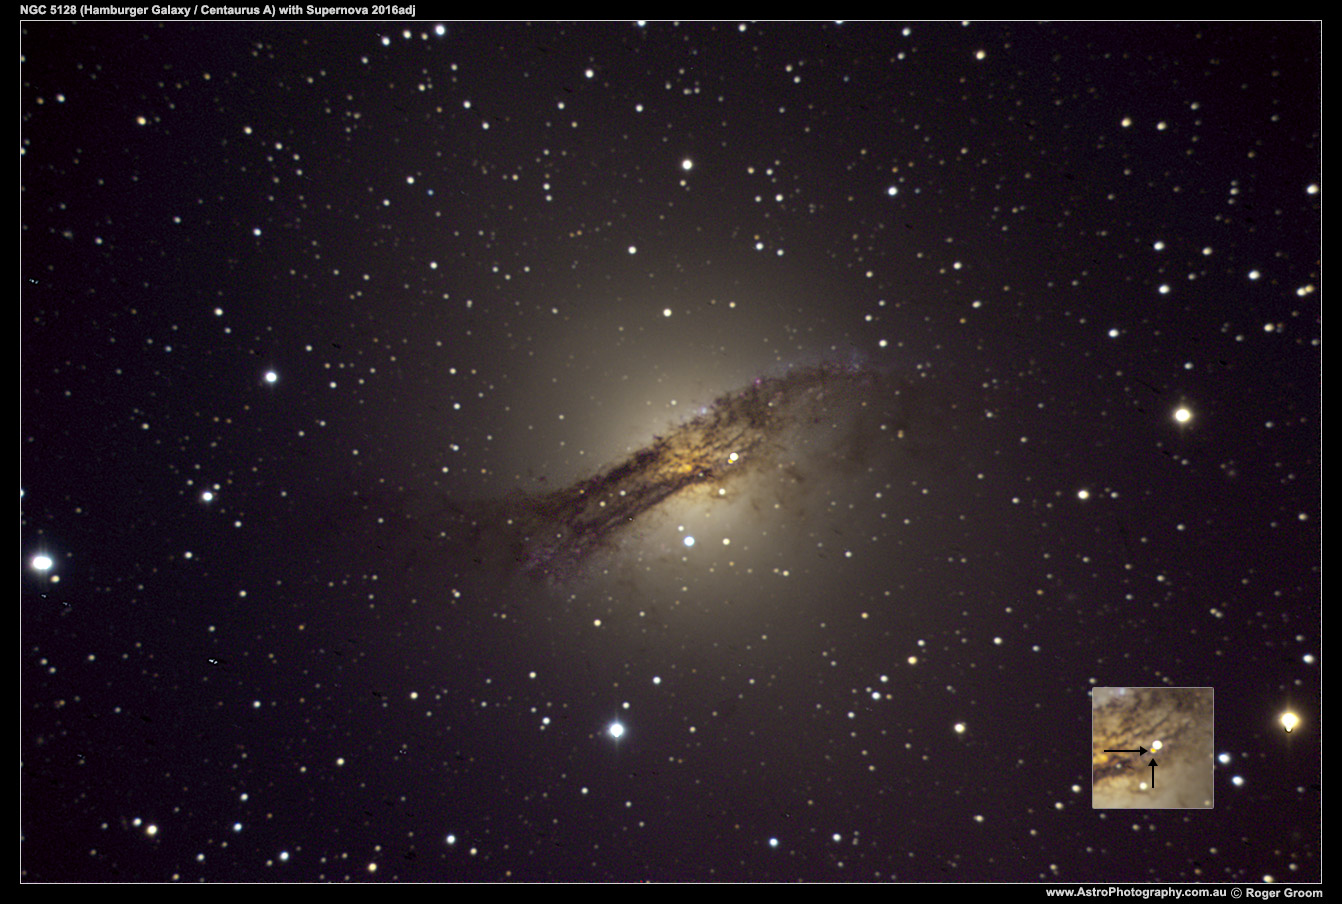 Supernova in NGC 5128 (Hamberger / Centaurus A galaxy)